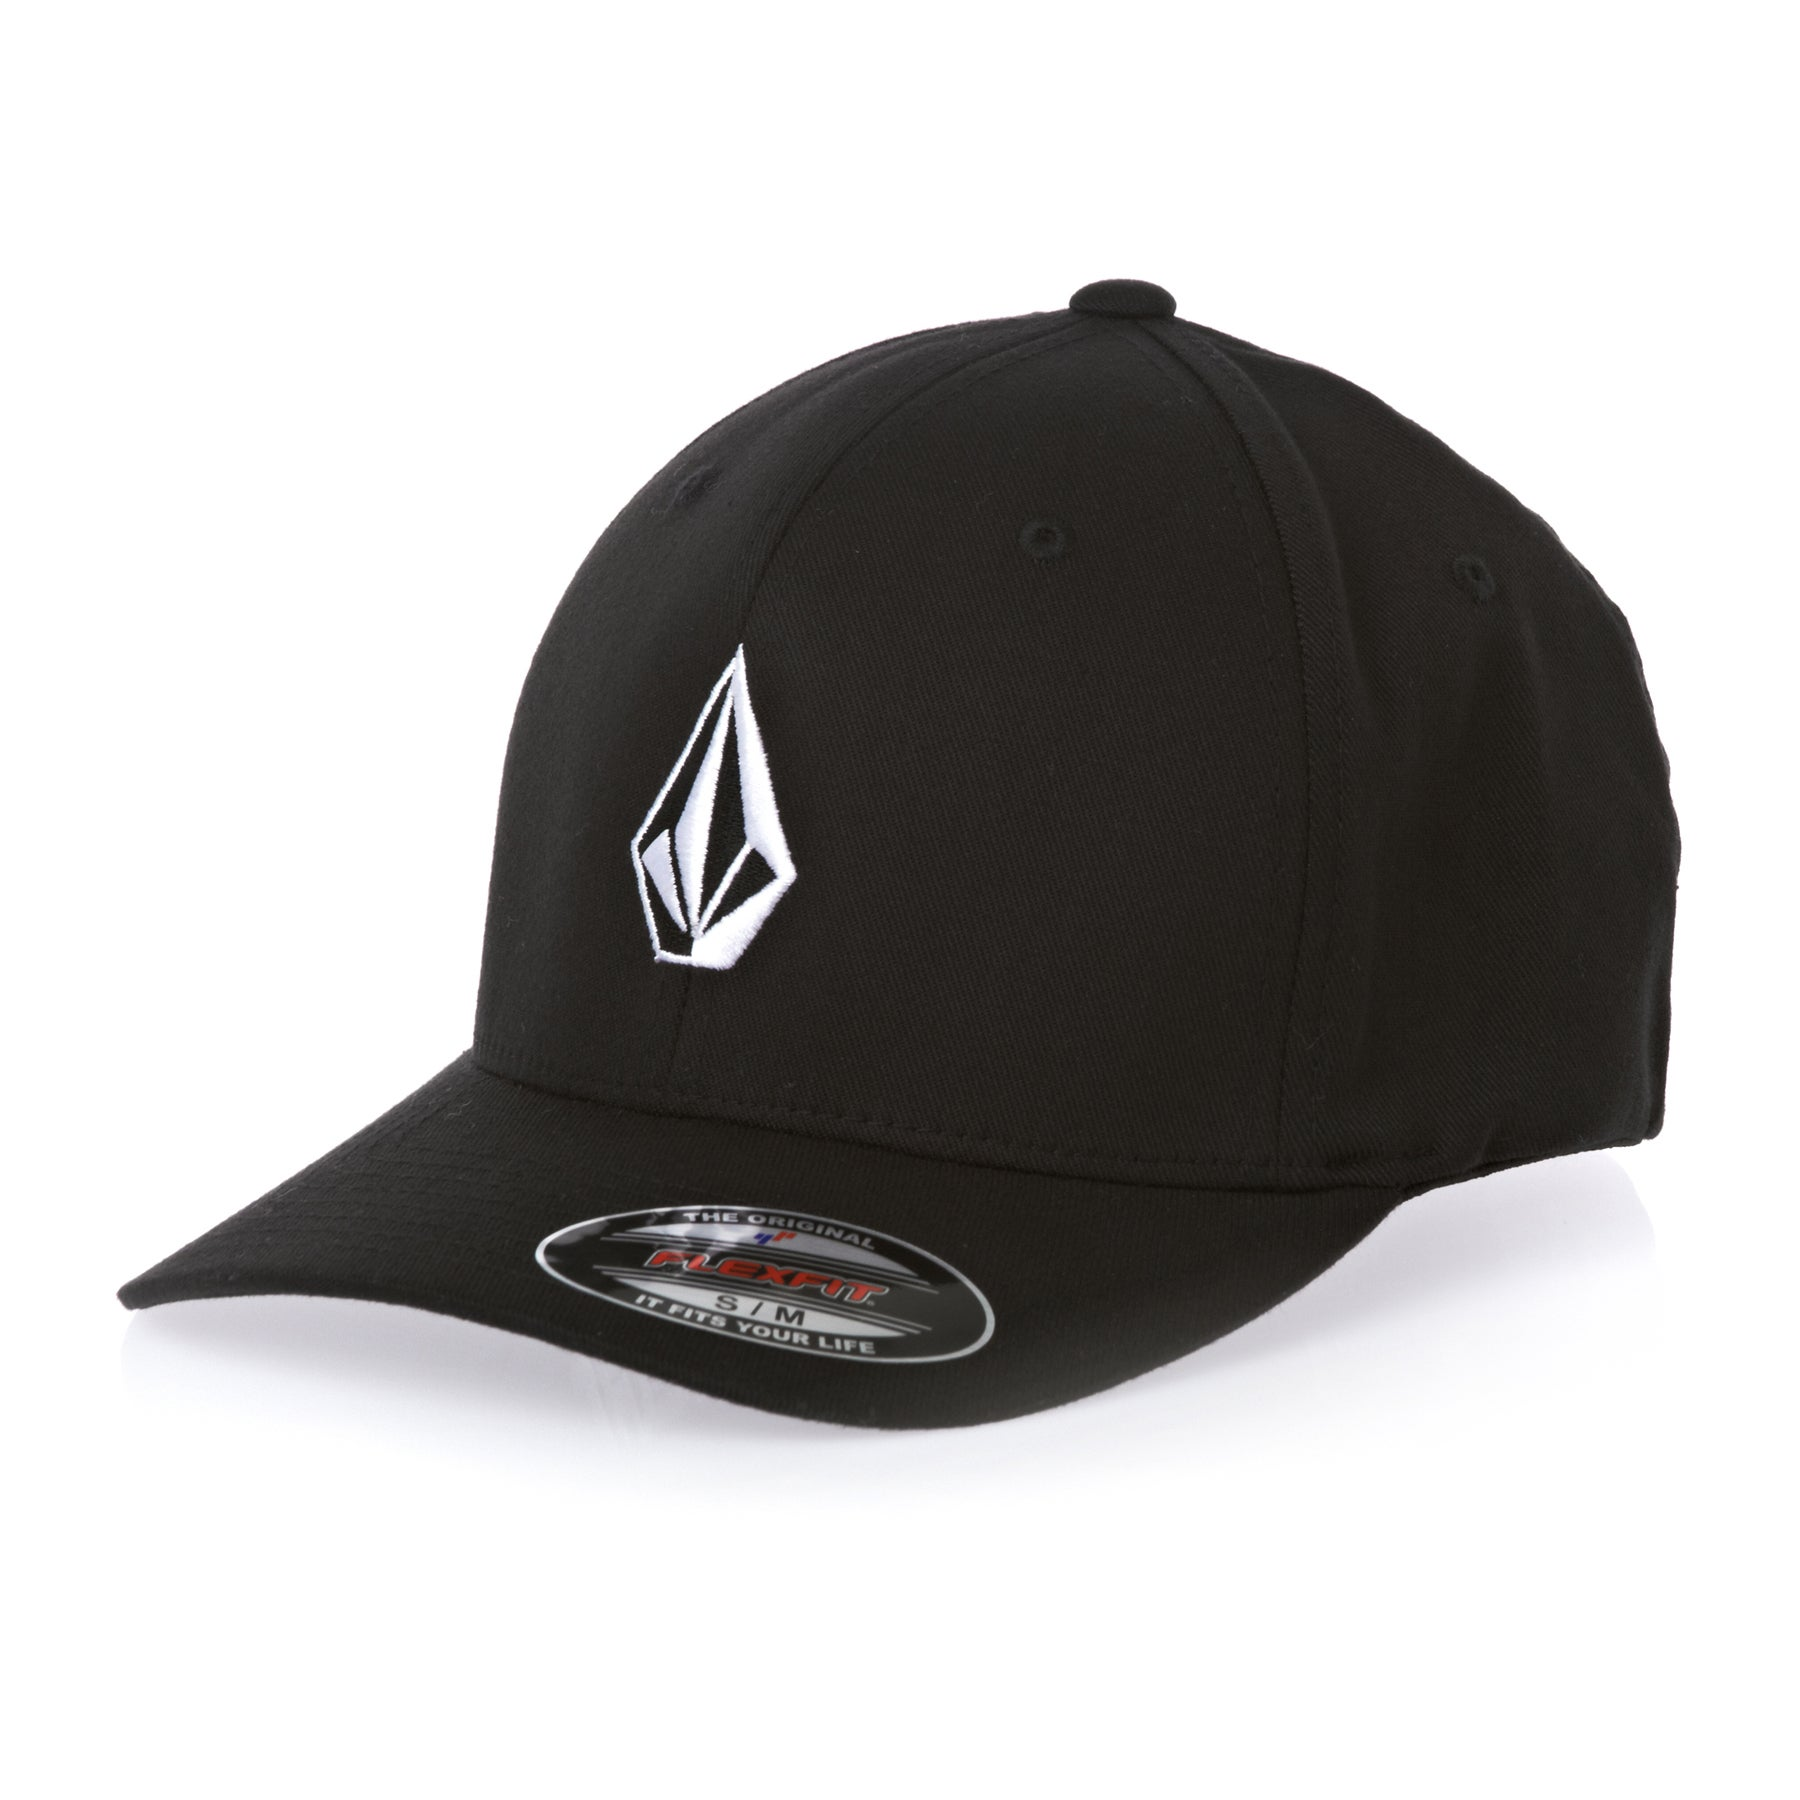 Volcom Full Stone 6277 Flexifit Cap - Black